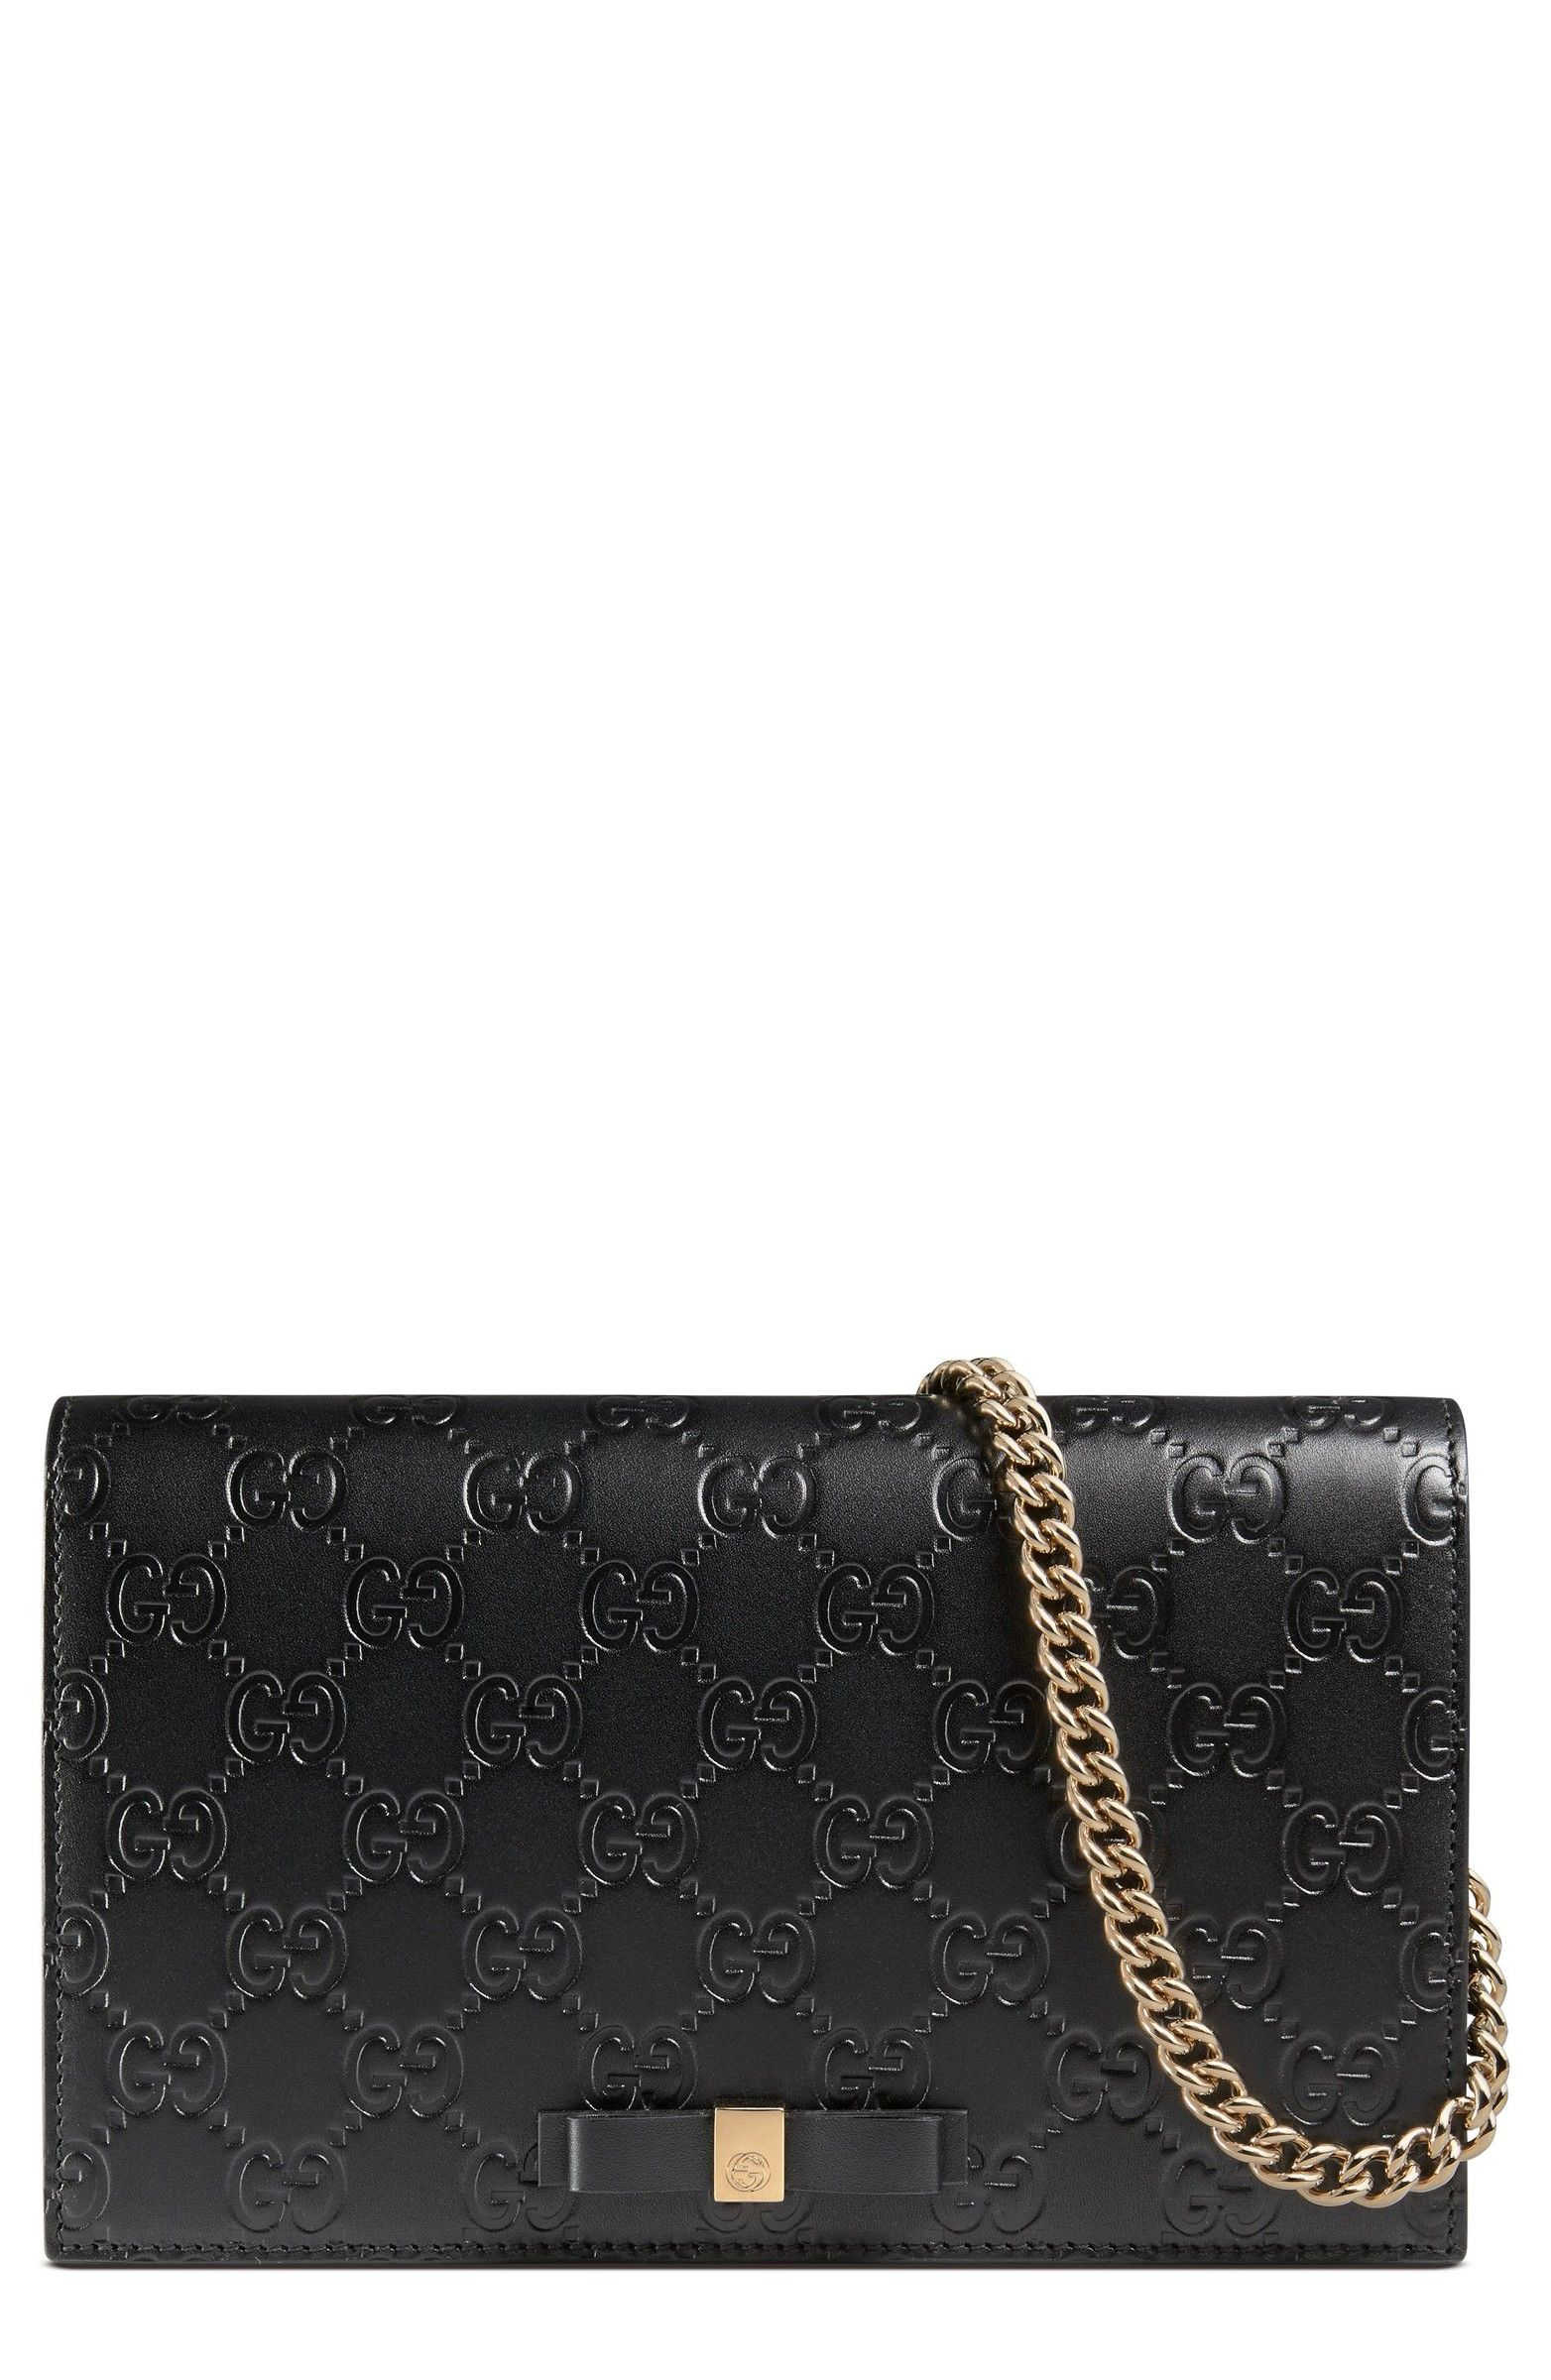 ba332f8c2e0d Love the simplicity of this bag. It will last forever. - Gucci Signature Leather  Wallet on a Chain